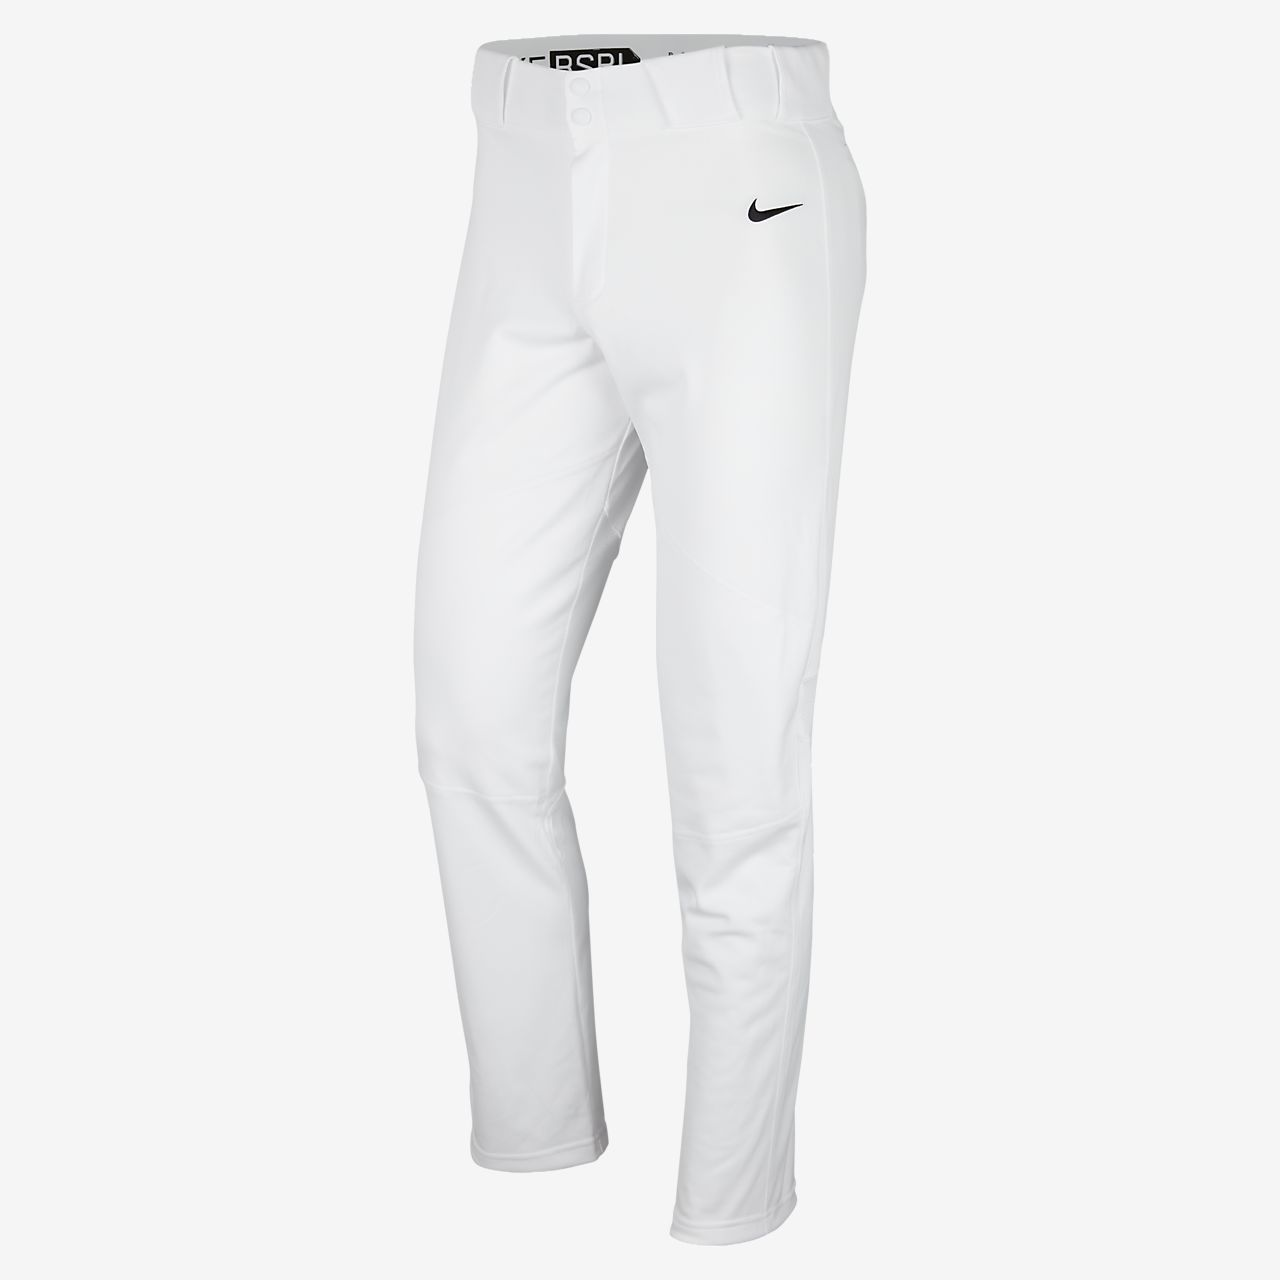 best cheap 0740a 9ea87 Men s Baseball Pants. Nike Pro Vapor